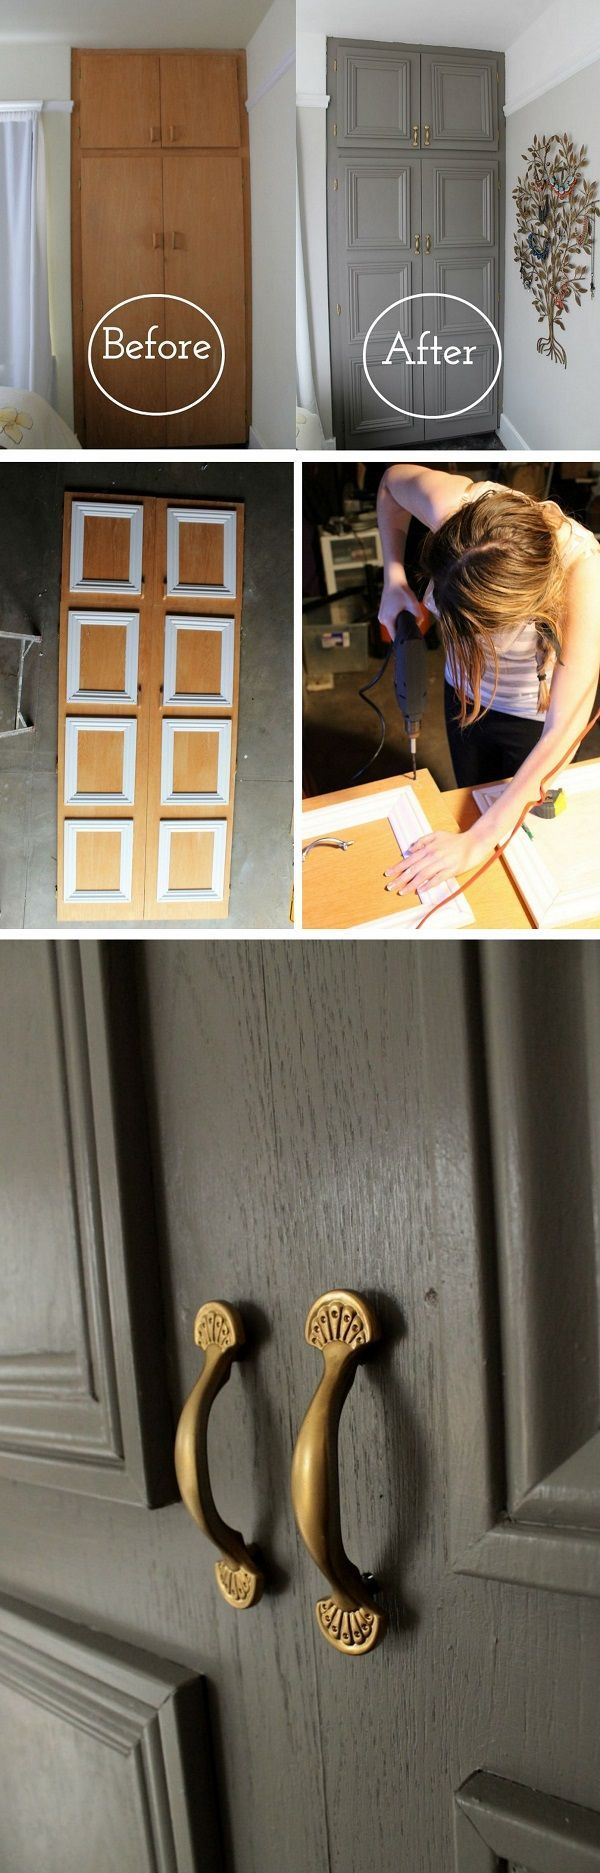 16 simple DIY door projects for stunning decor on a budget #dekor #di …